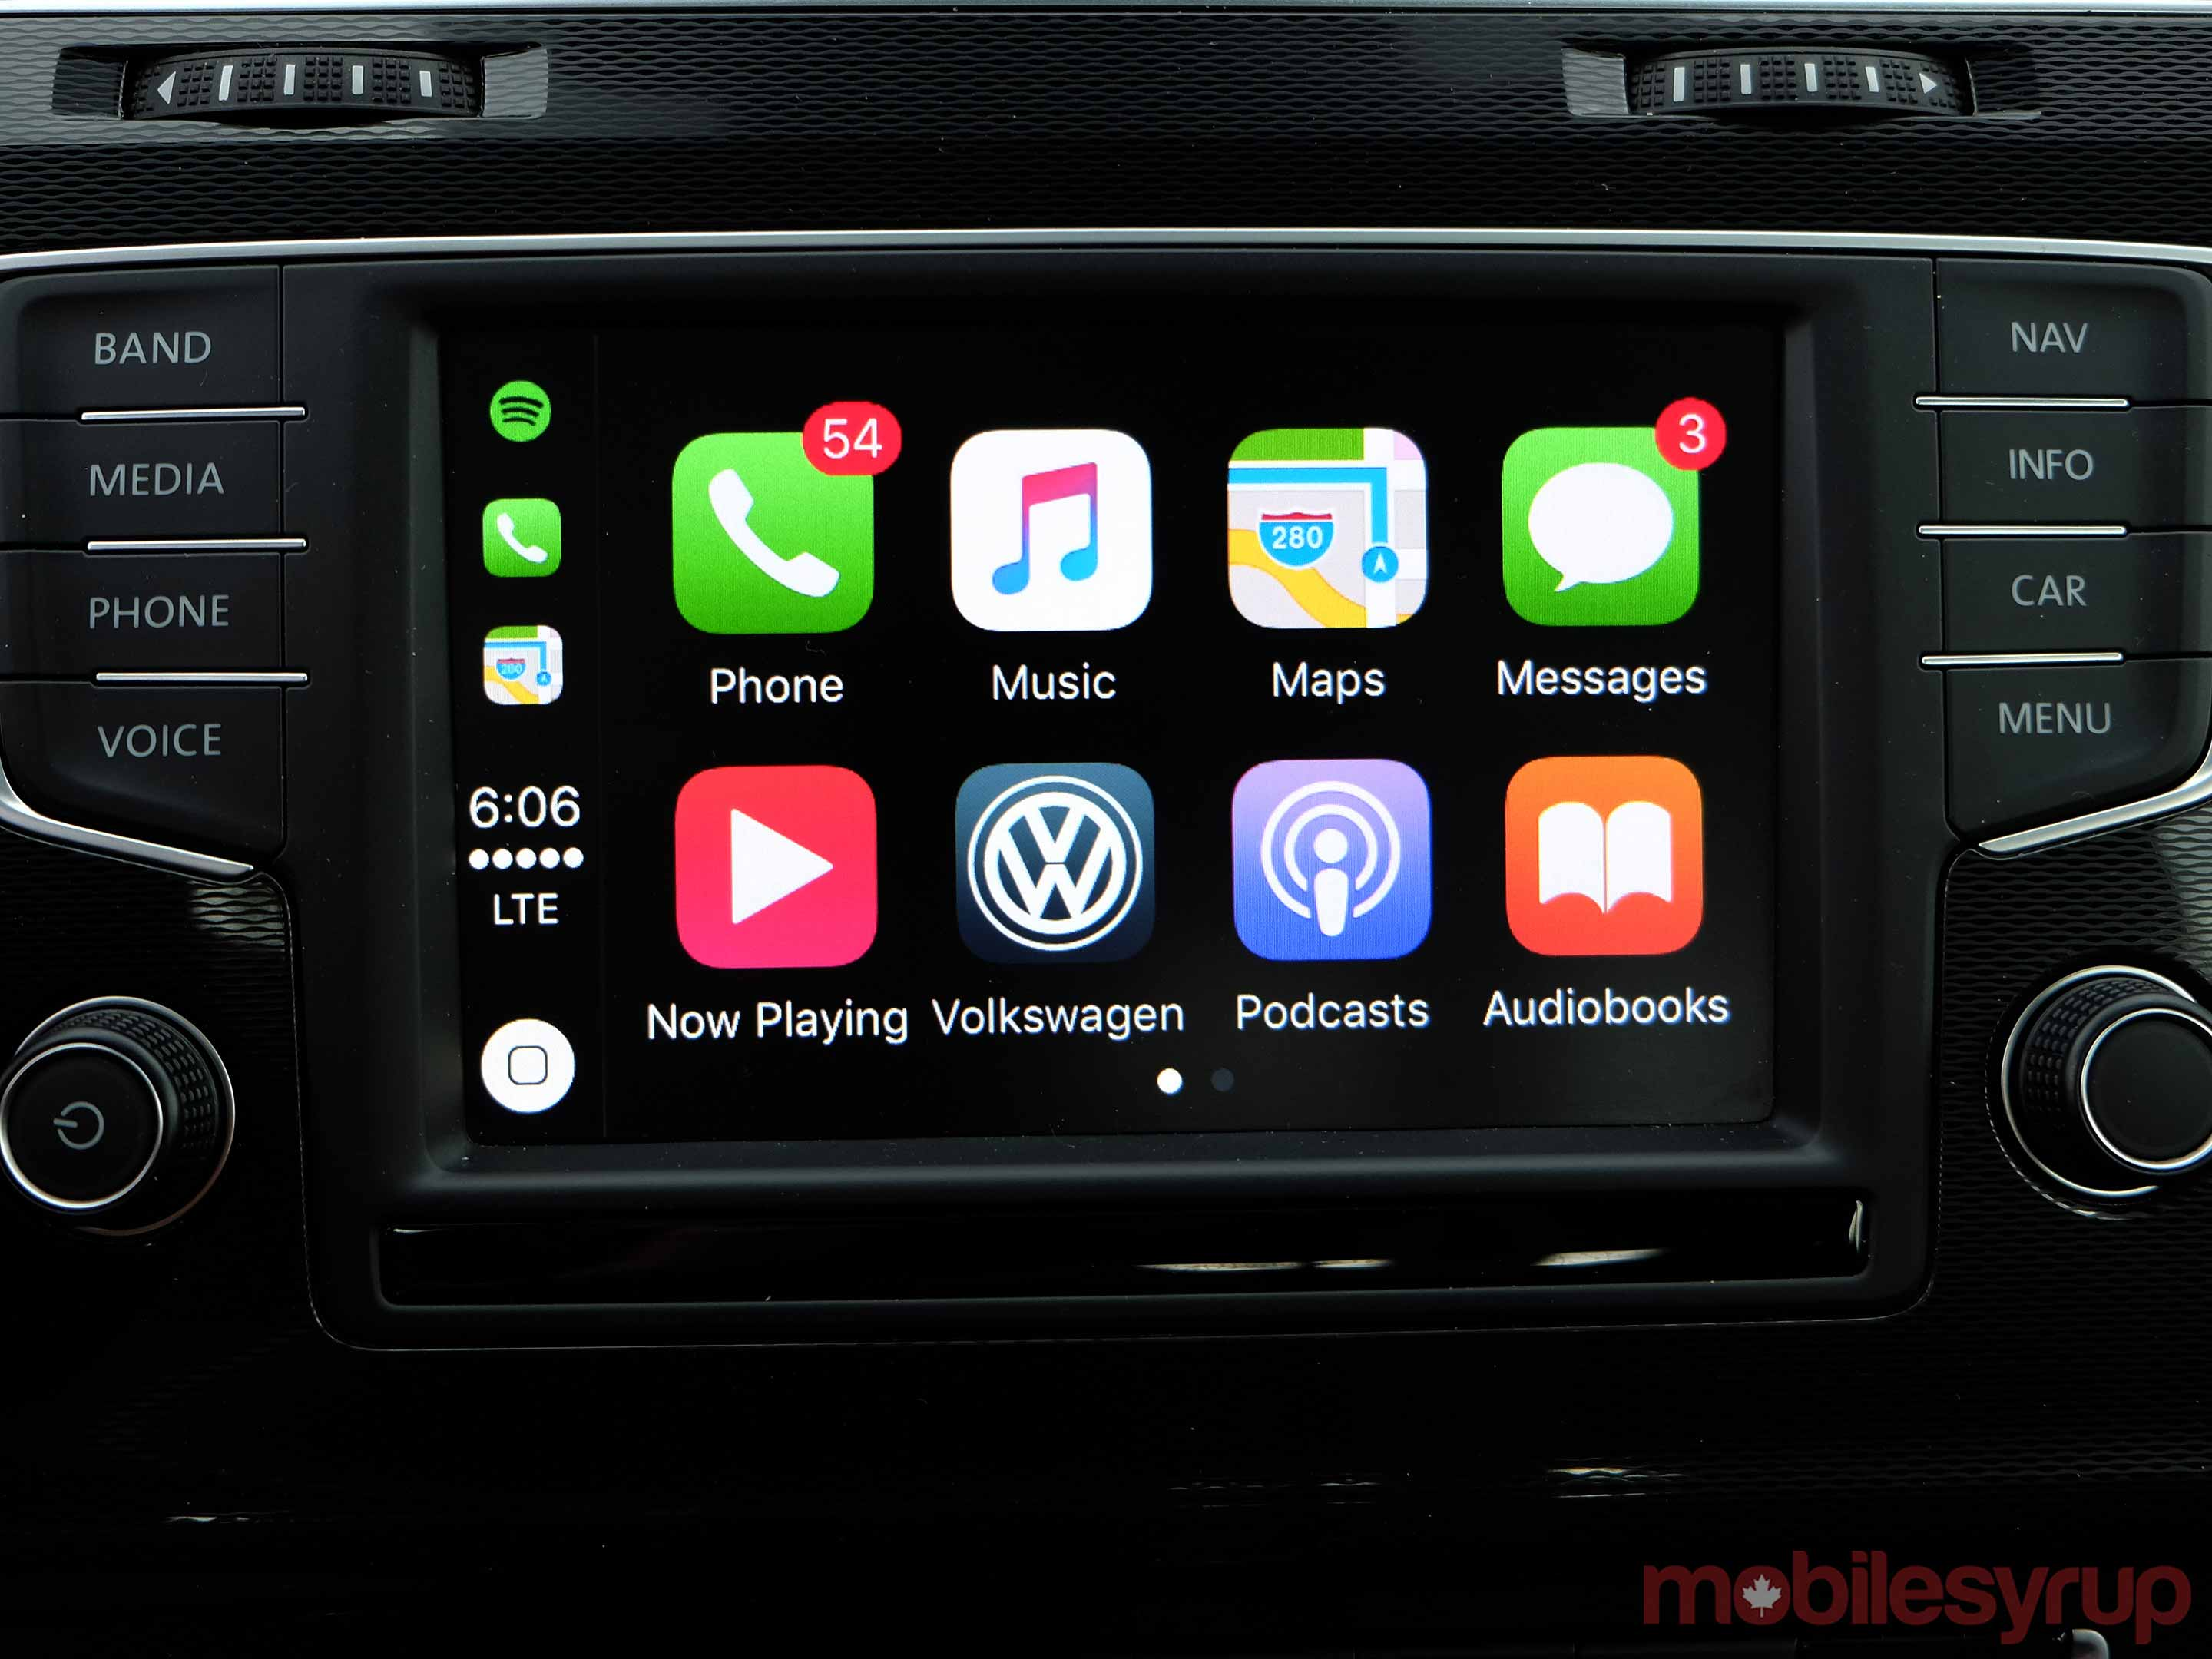 VW Apple CarPlay